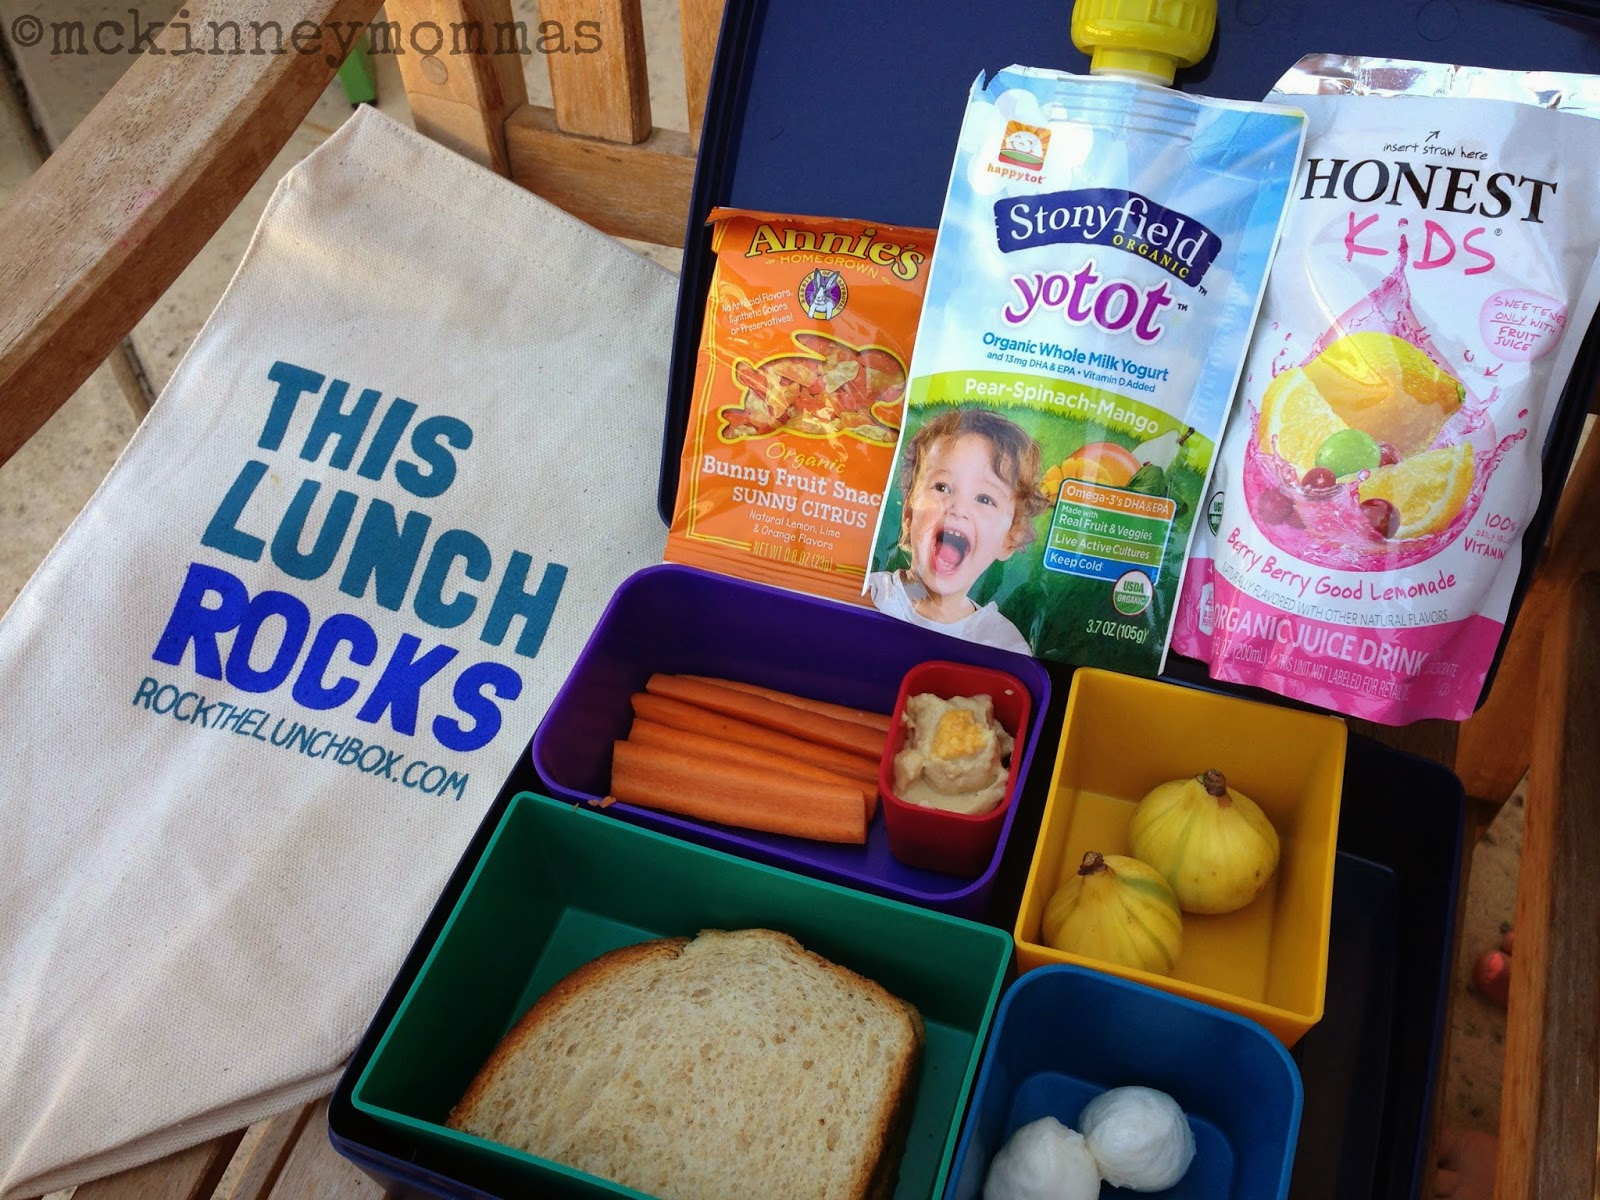 Honest Kids, Stonyfield Yogurt Pouch, Figs, rockthelunchbox.com